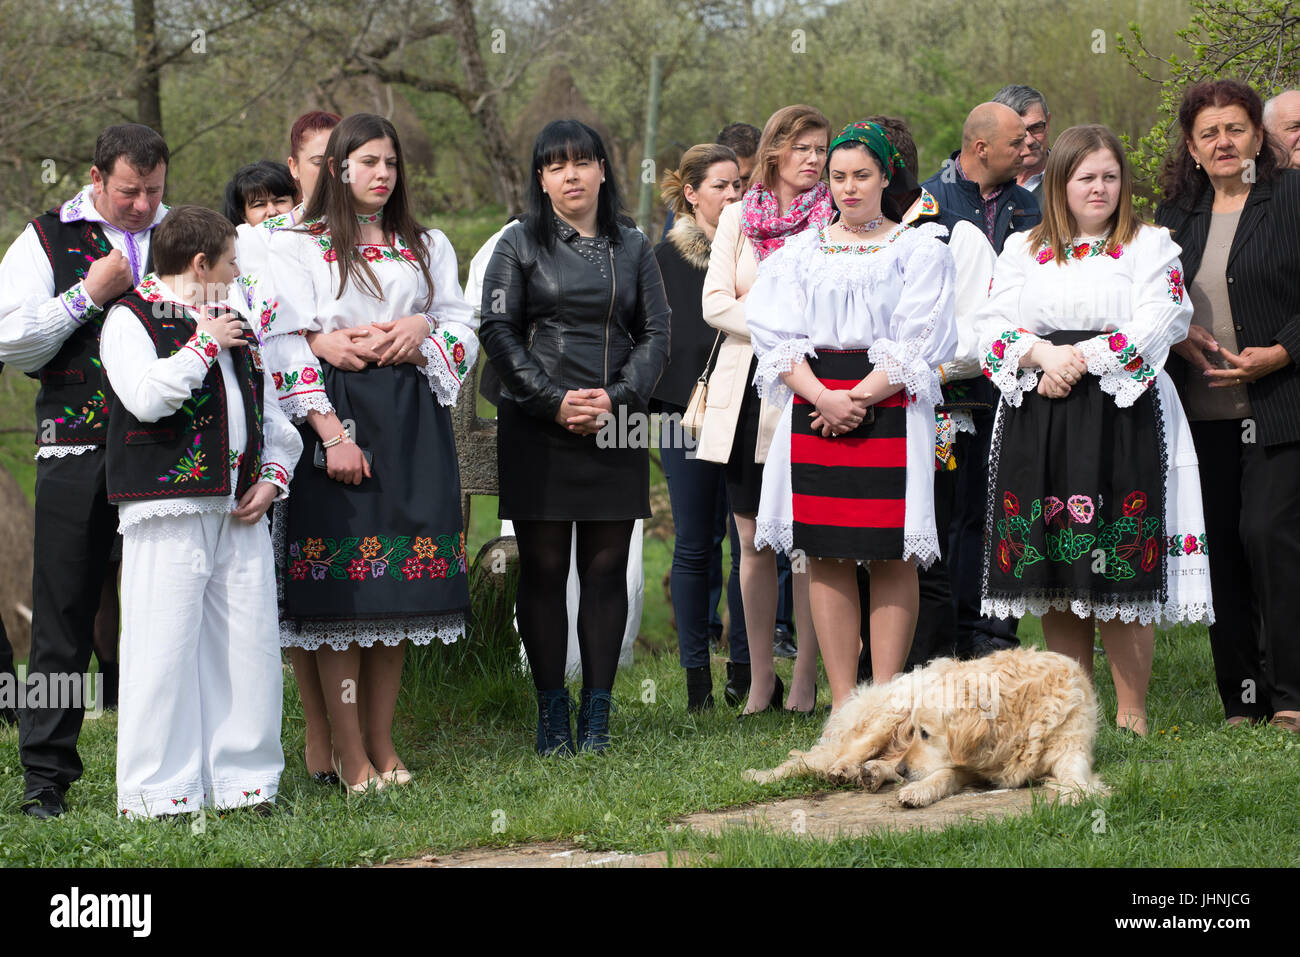 """People in traditional costume at """"Udatoriul"""" old agrarian custom on Easter Monday, Surdesti, District of Maramures, Stock Photo"""